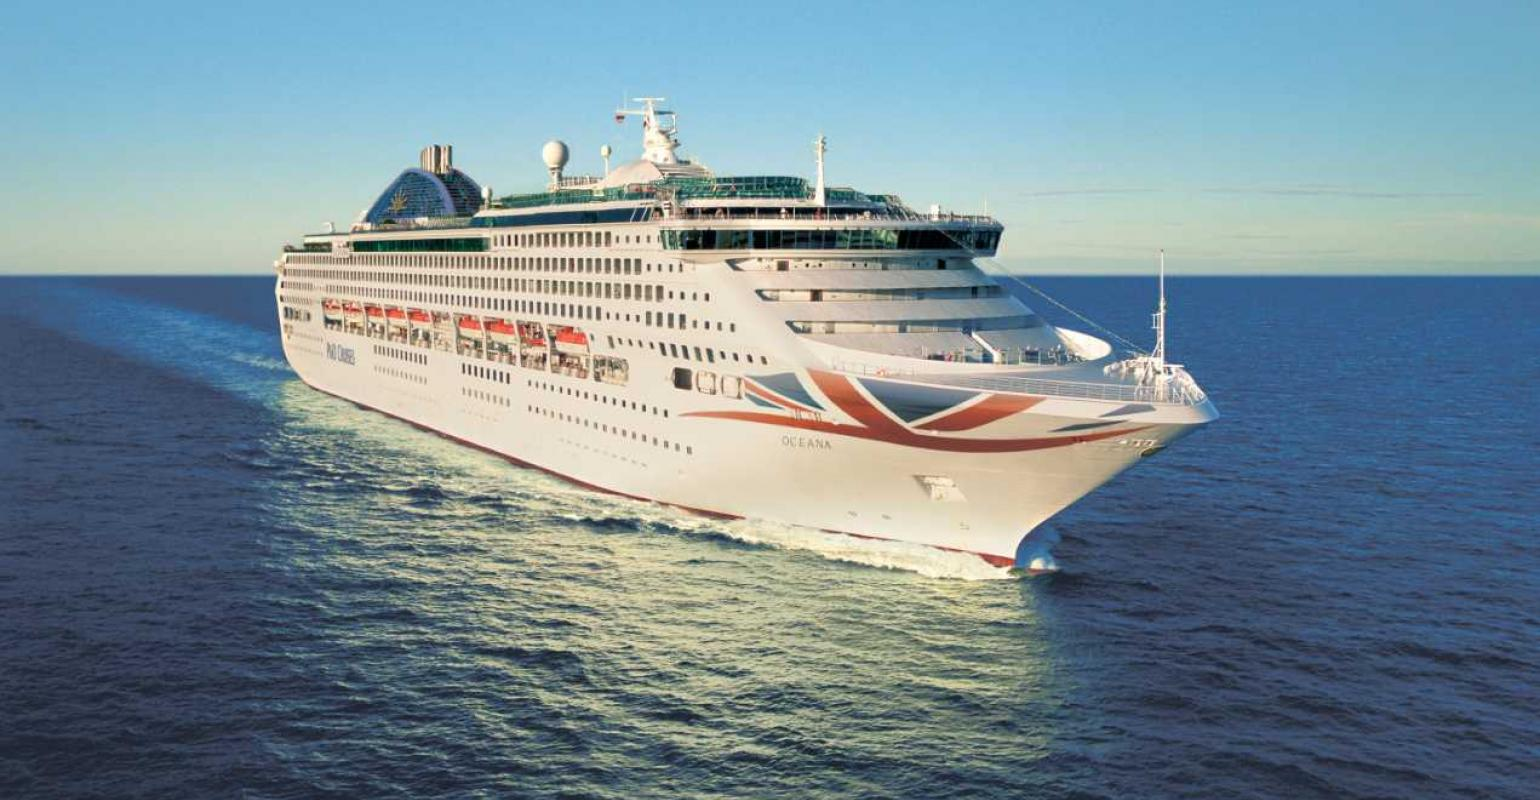 P&O Cruises sells Oceana to 'fit for future growth' | seatrade ...